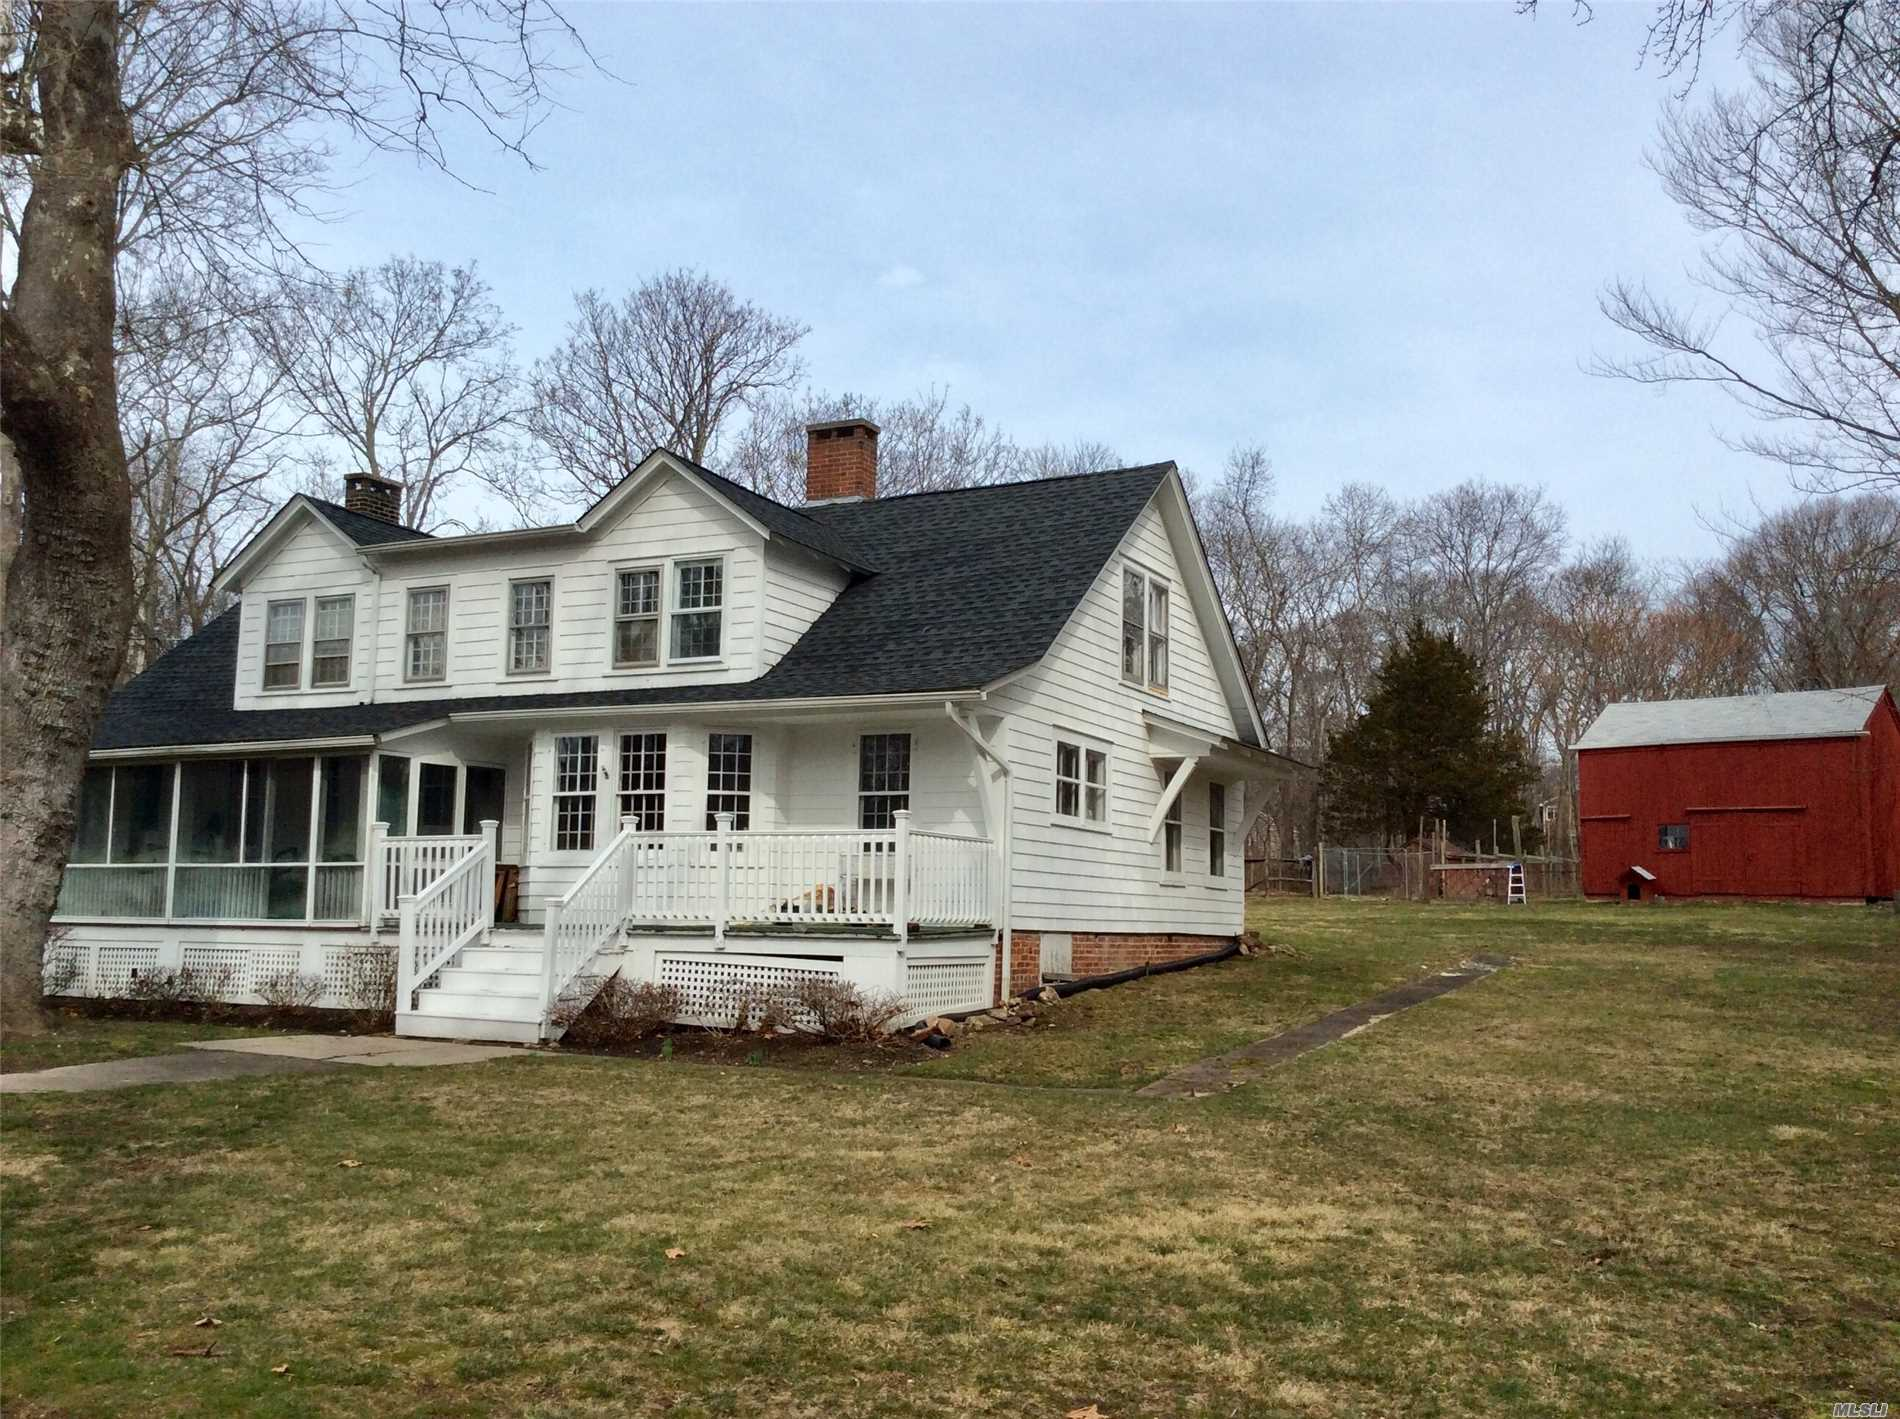 8645 N Main Bayview Rd - Southold, New York